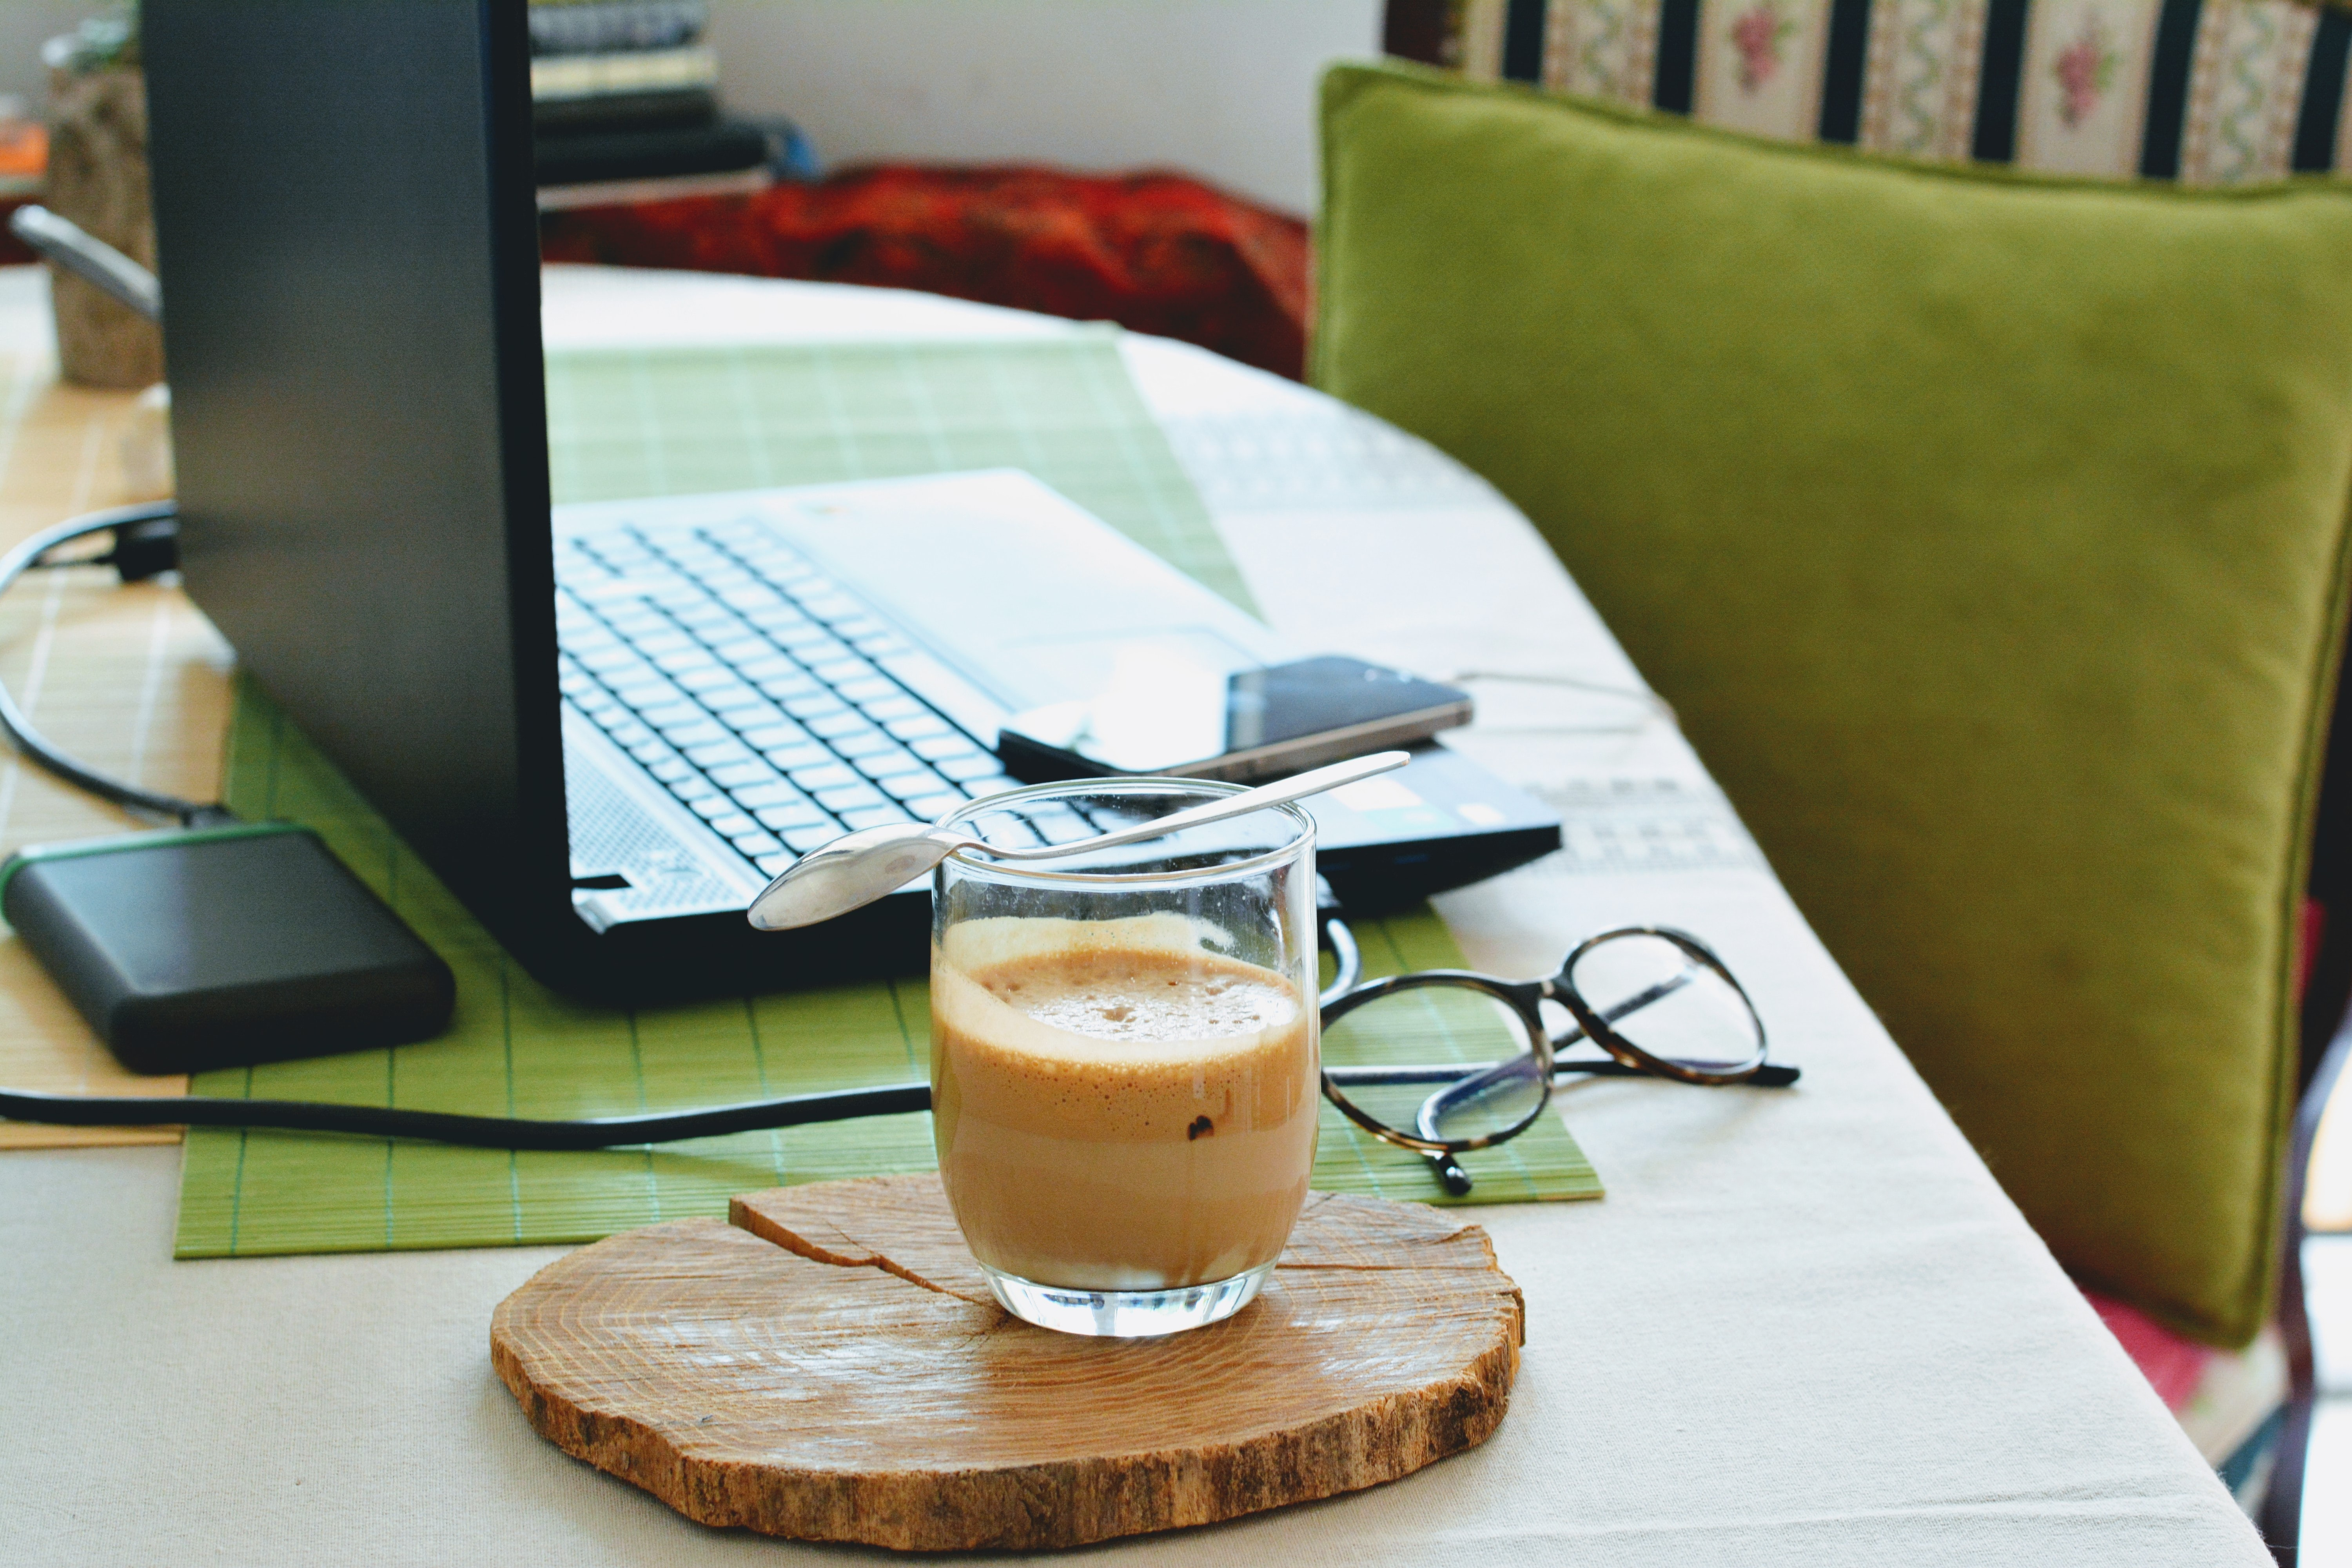 Top 5 Strategies to Stay Focused While Working From Home